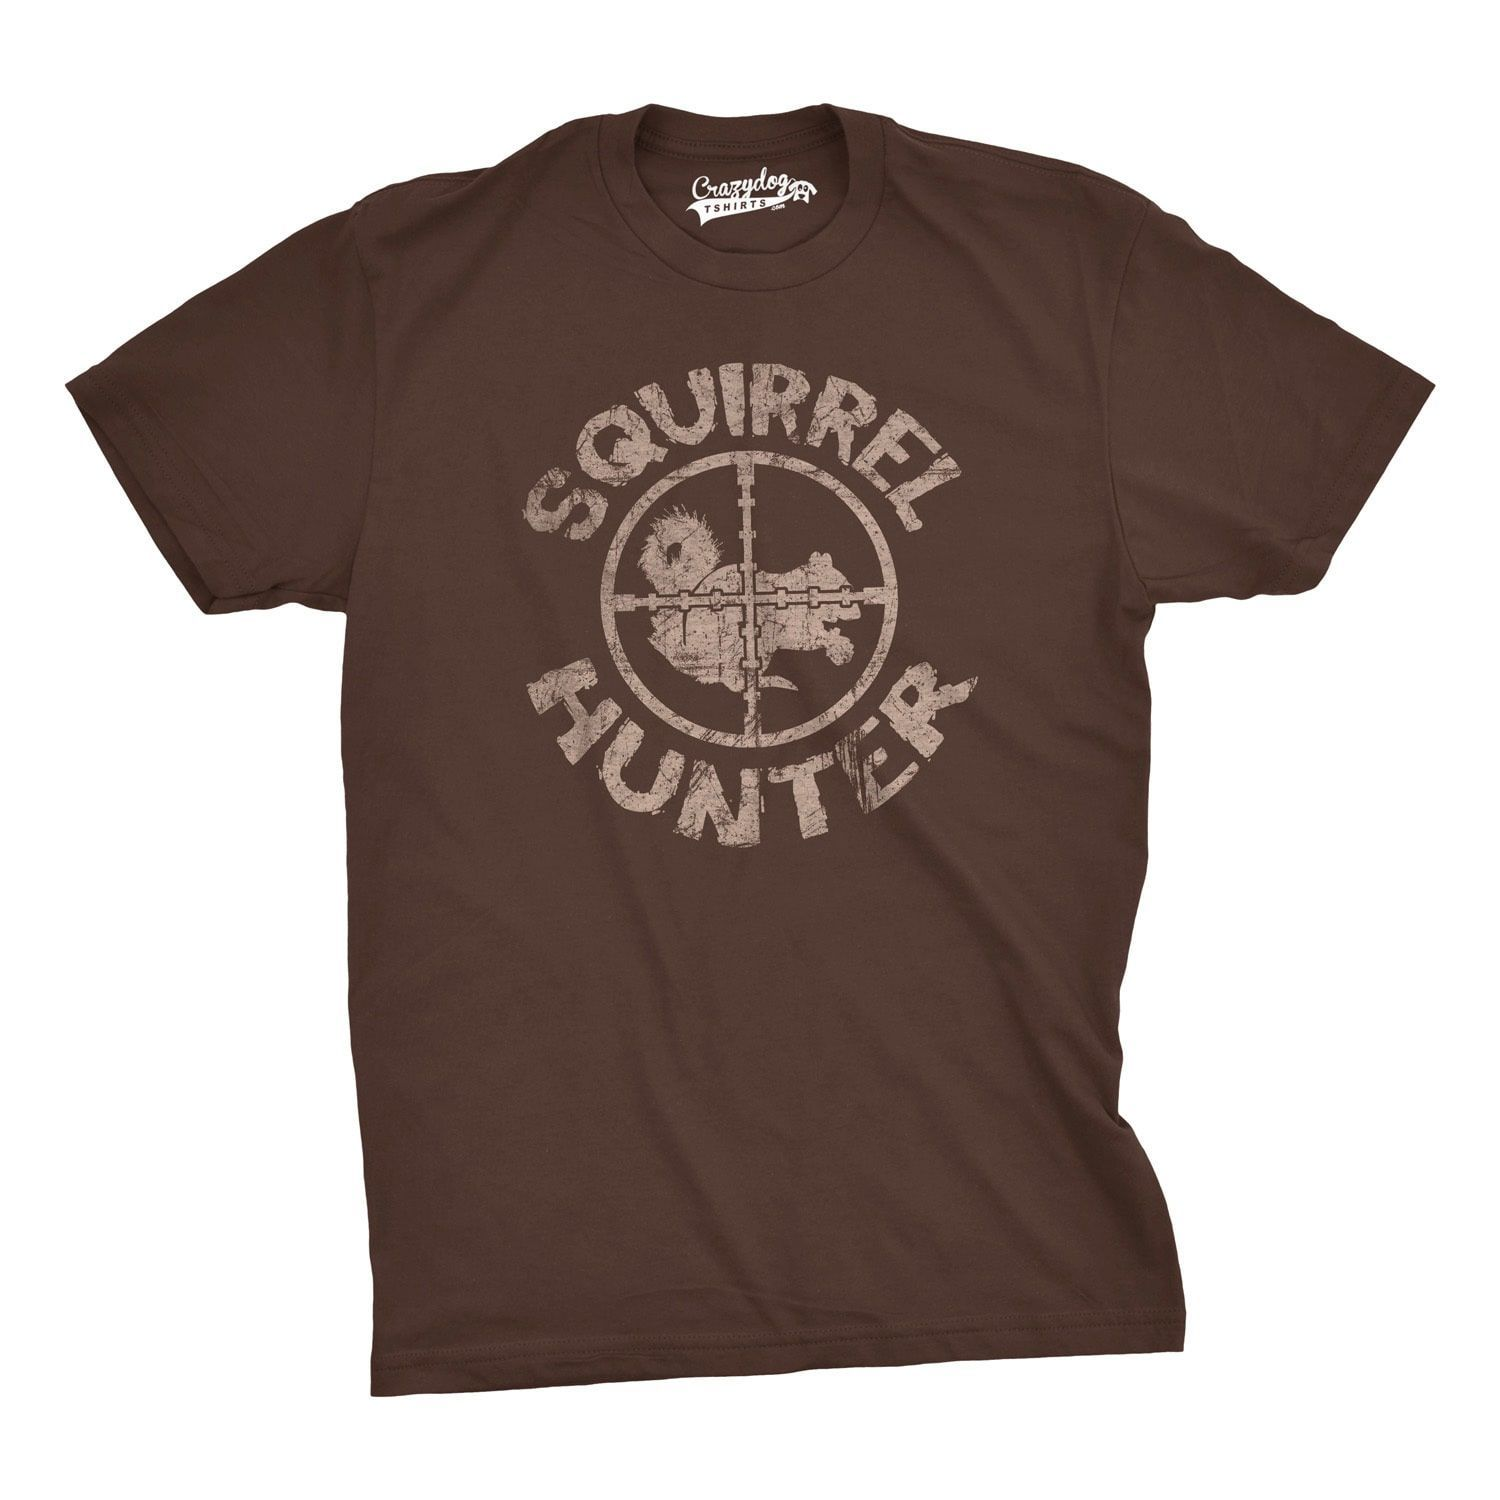 Funny Hunting Quotes Squirrel Hunter T Shirt Funny Hunting Shirt Squirrels Teecrazy